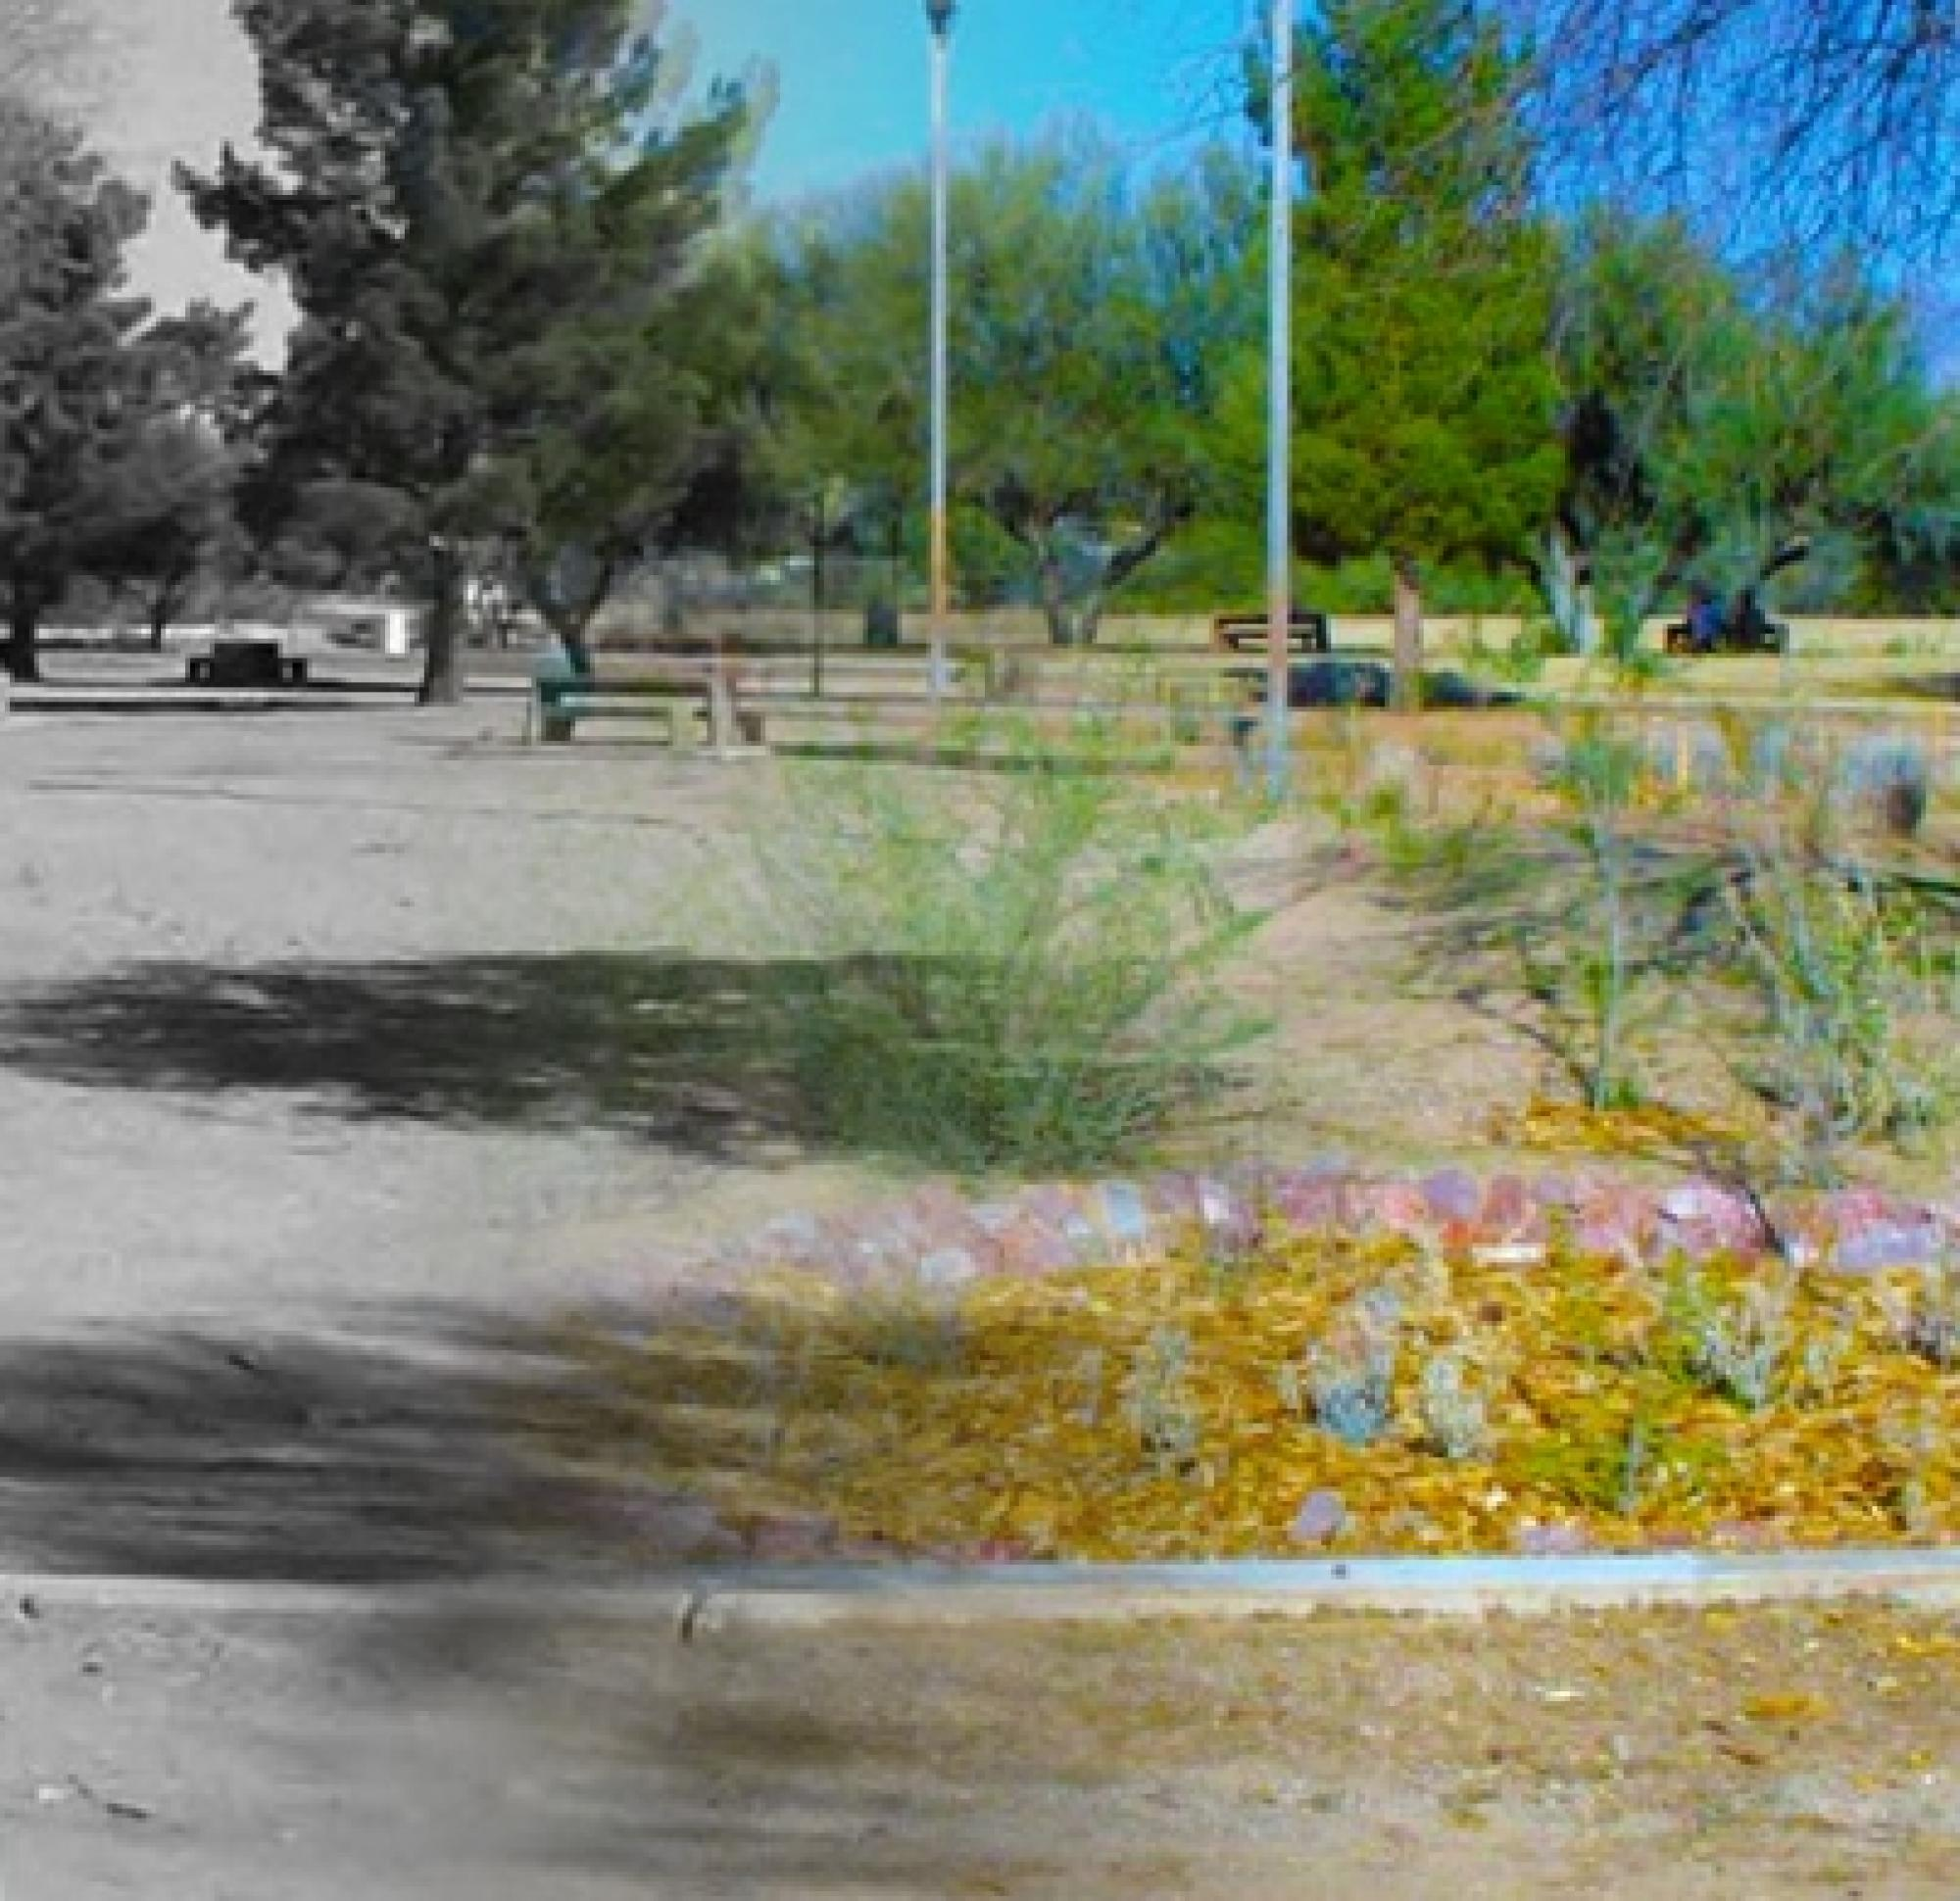 A before  and after  image of Atturbury Wash, a Tucson Audubon site on the southeast side of town that received C2E funding in 2012.